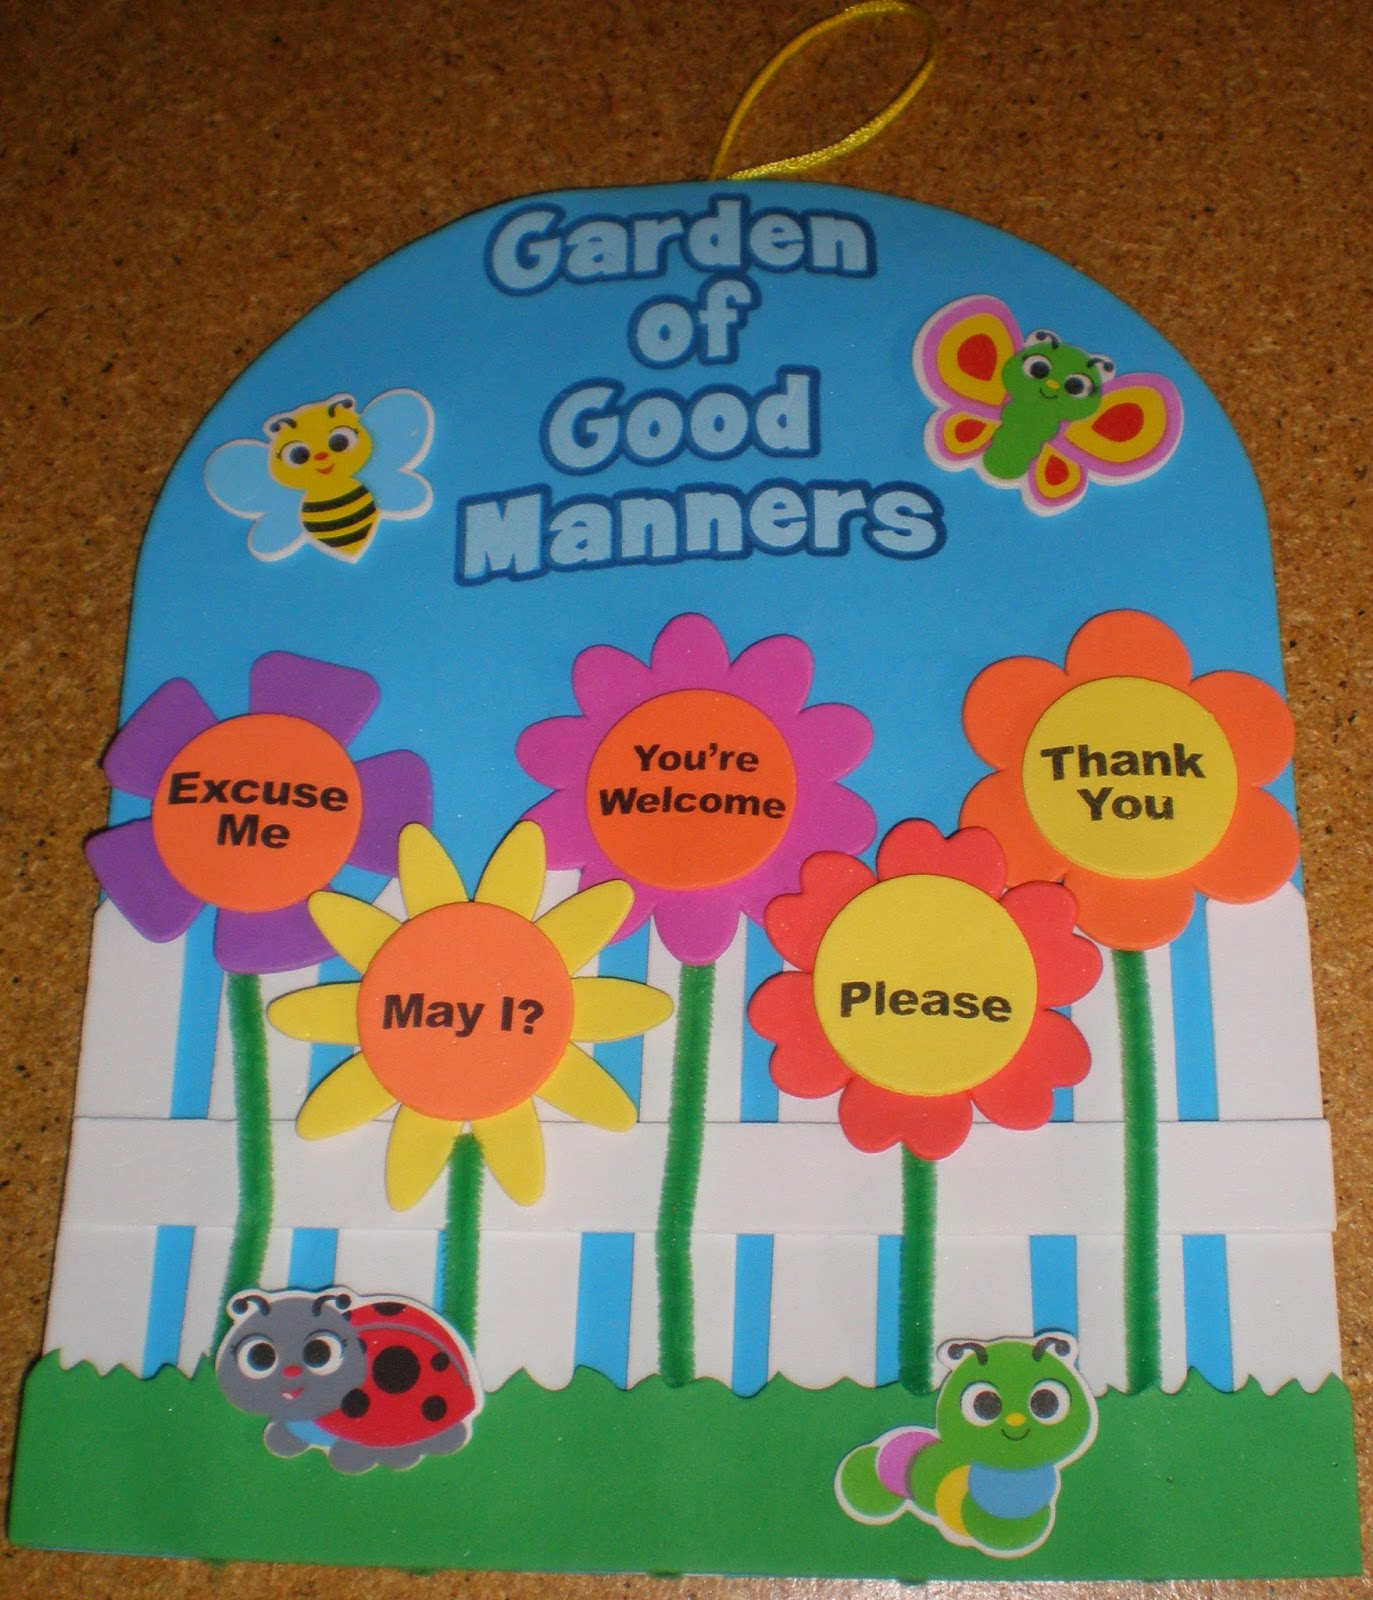 Petersham bible book tract depot garden of good manners for Good arts and crafts